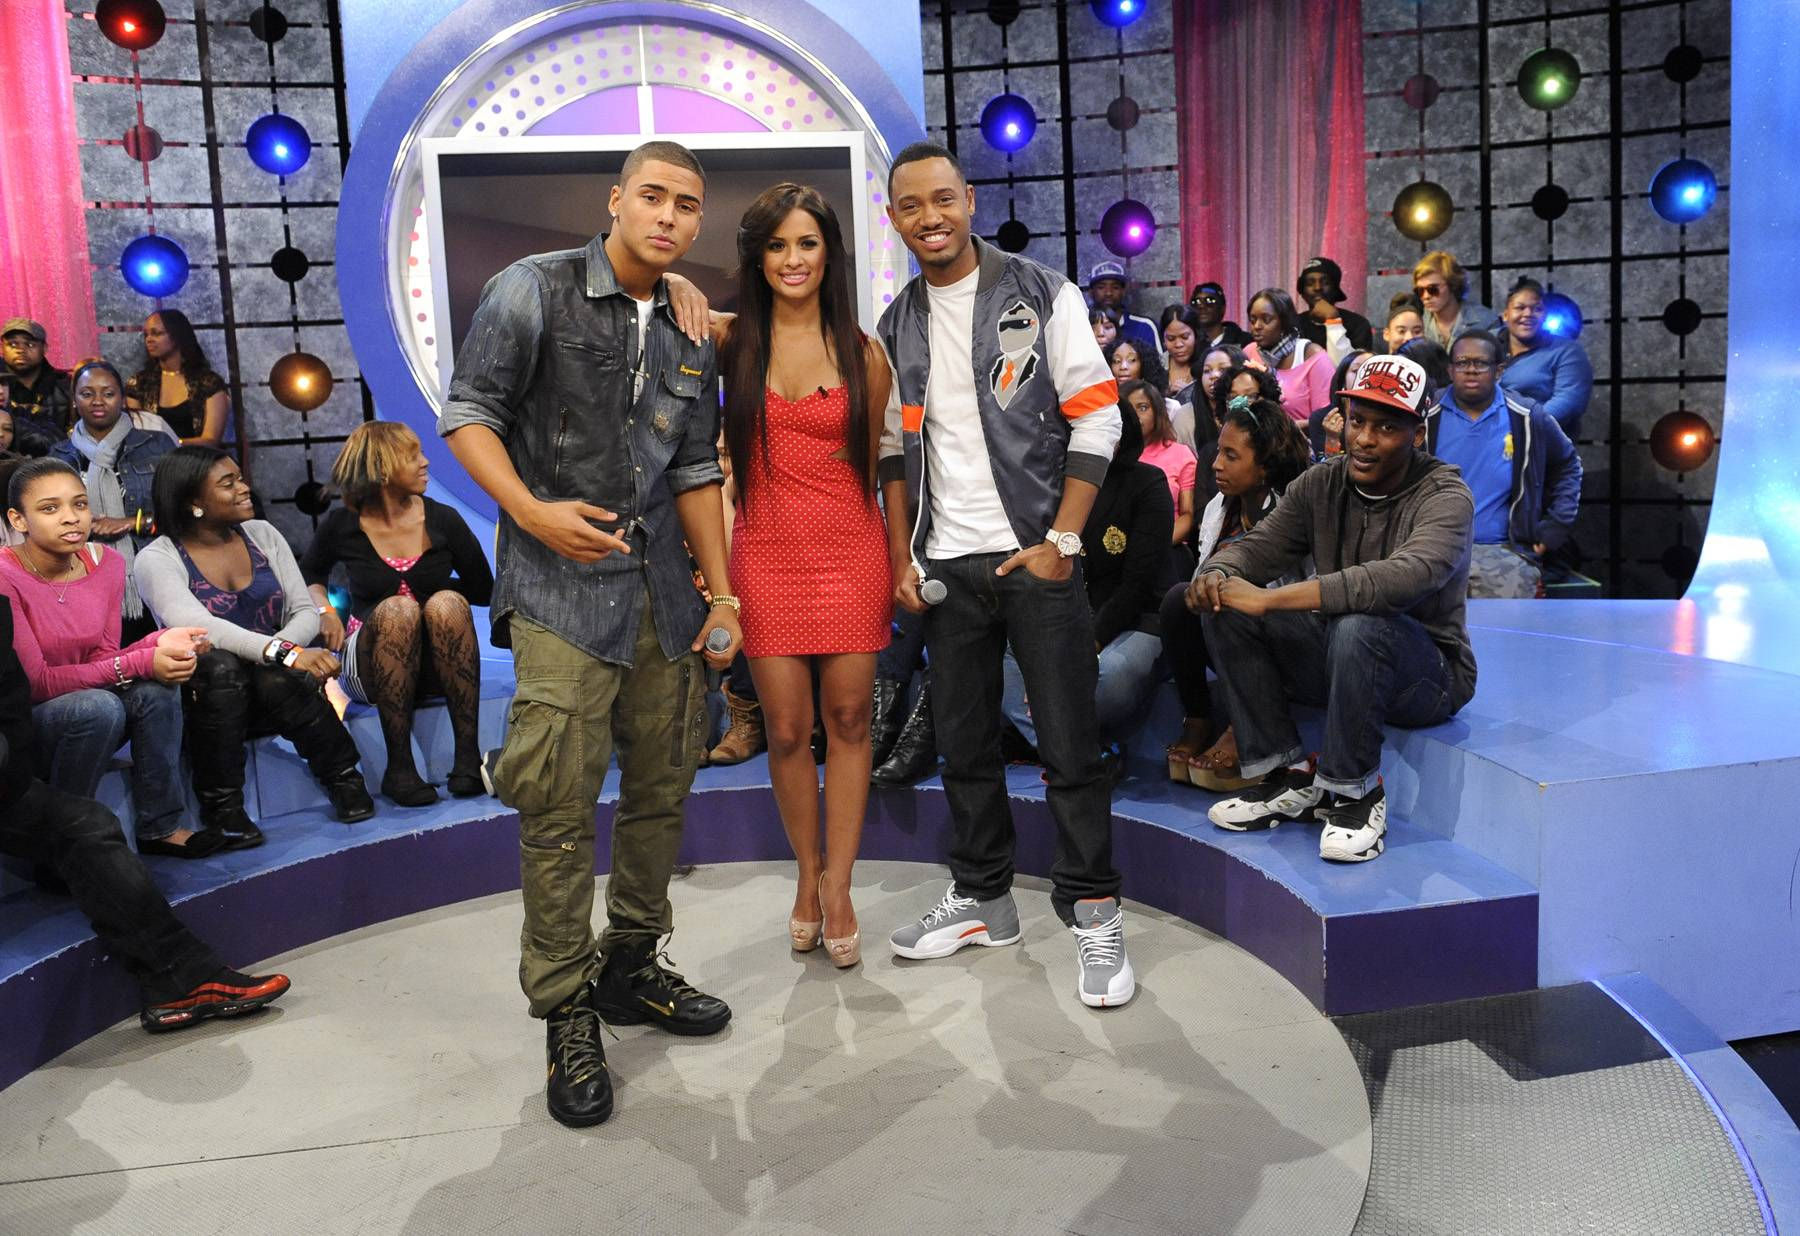 All Smiles - Quincy with Rocsi Diaz and Terrence J at 106 & Park, May 3, 2012. (Photo: John Ricard / BET)